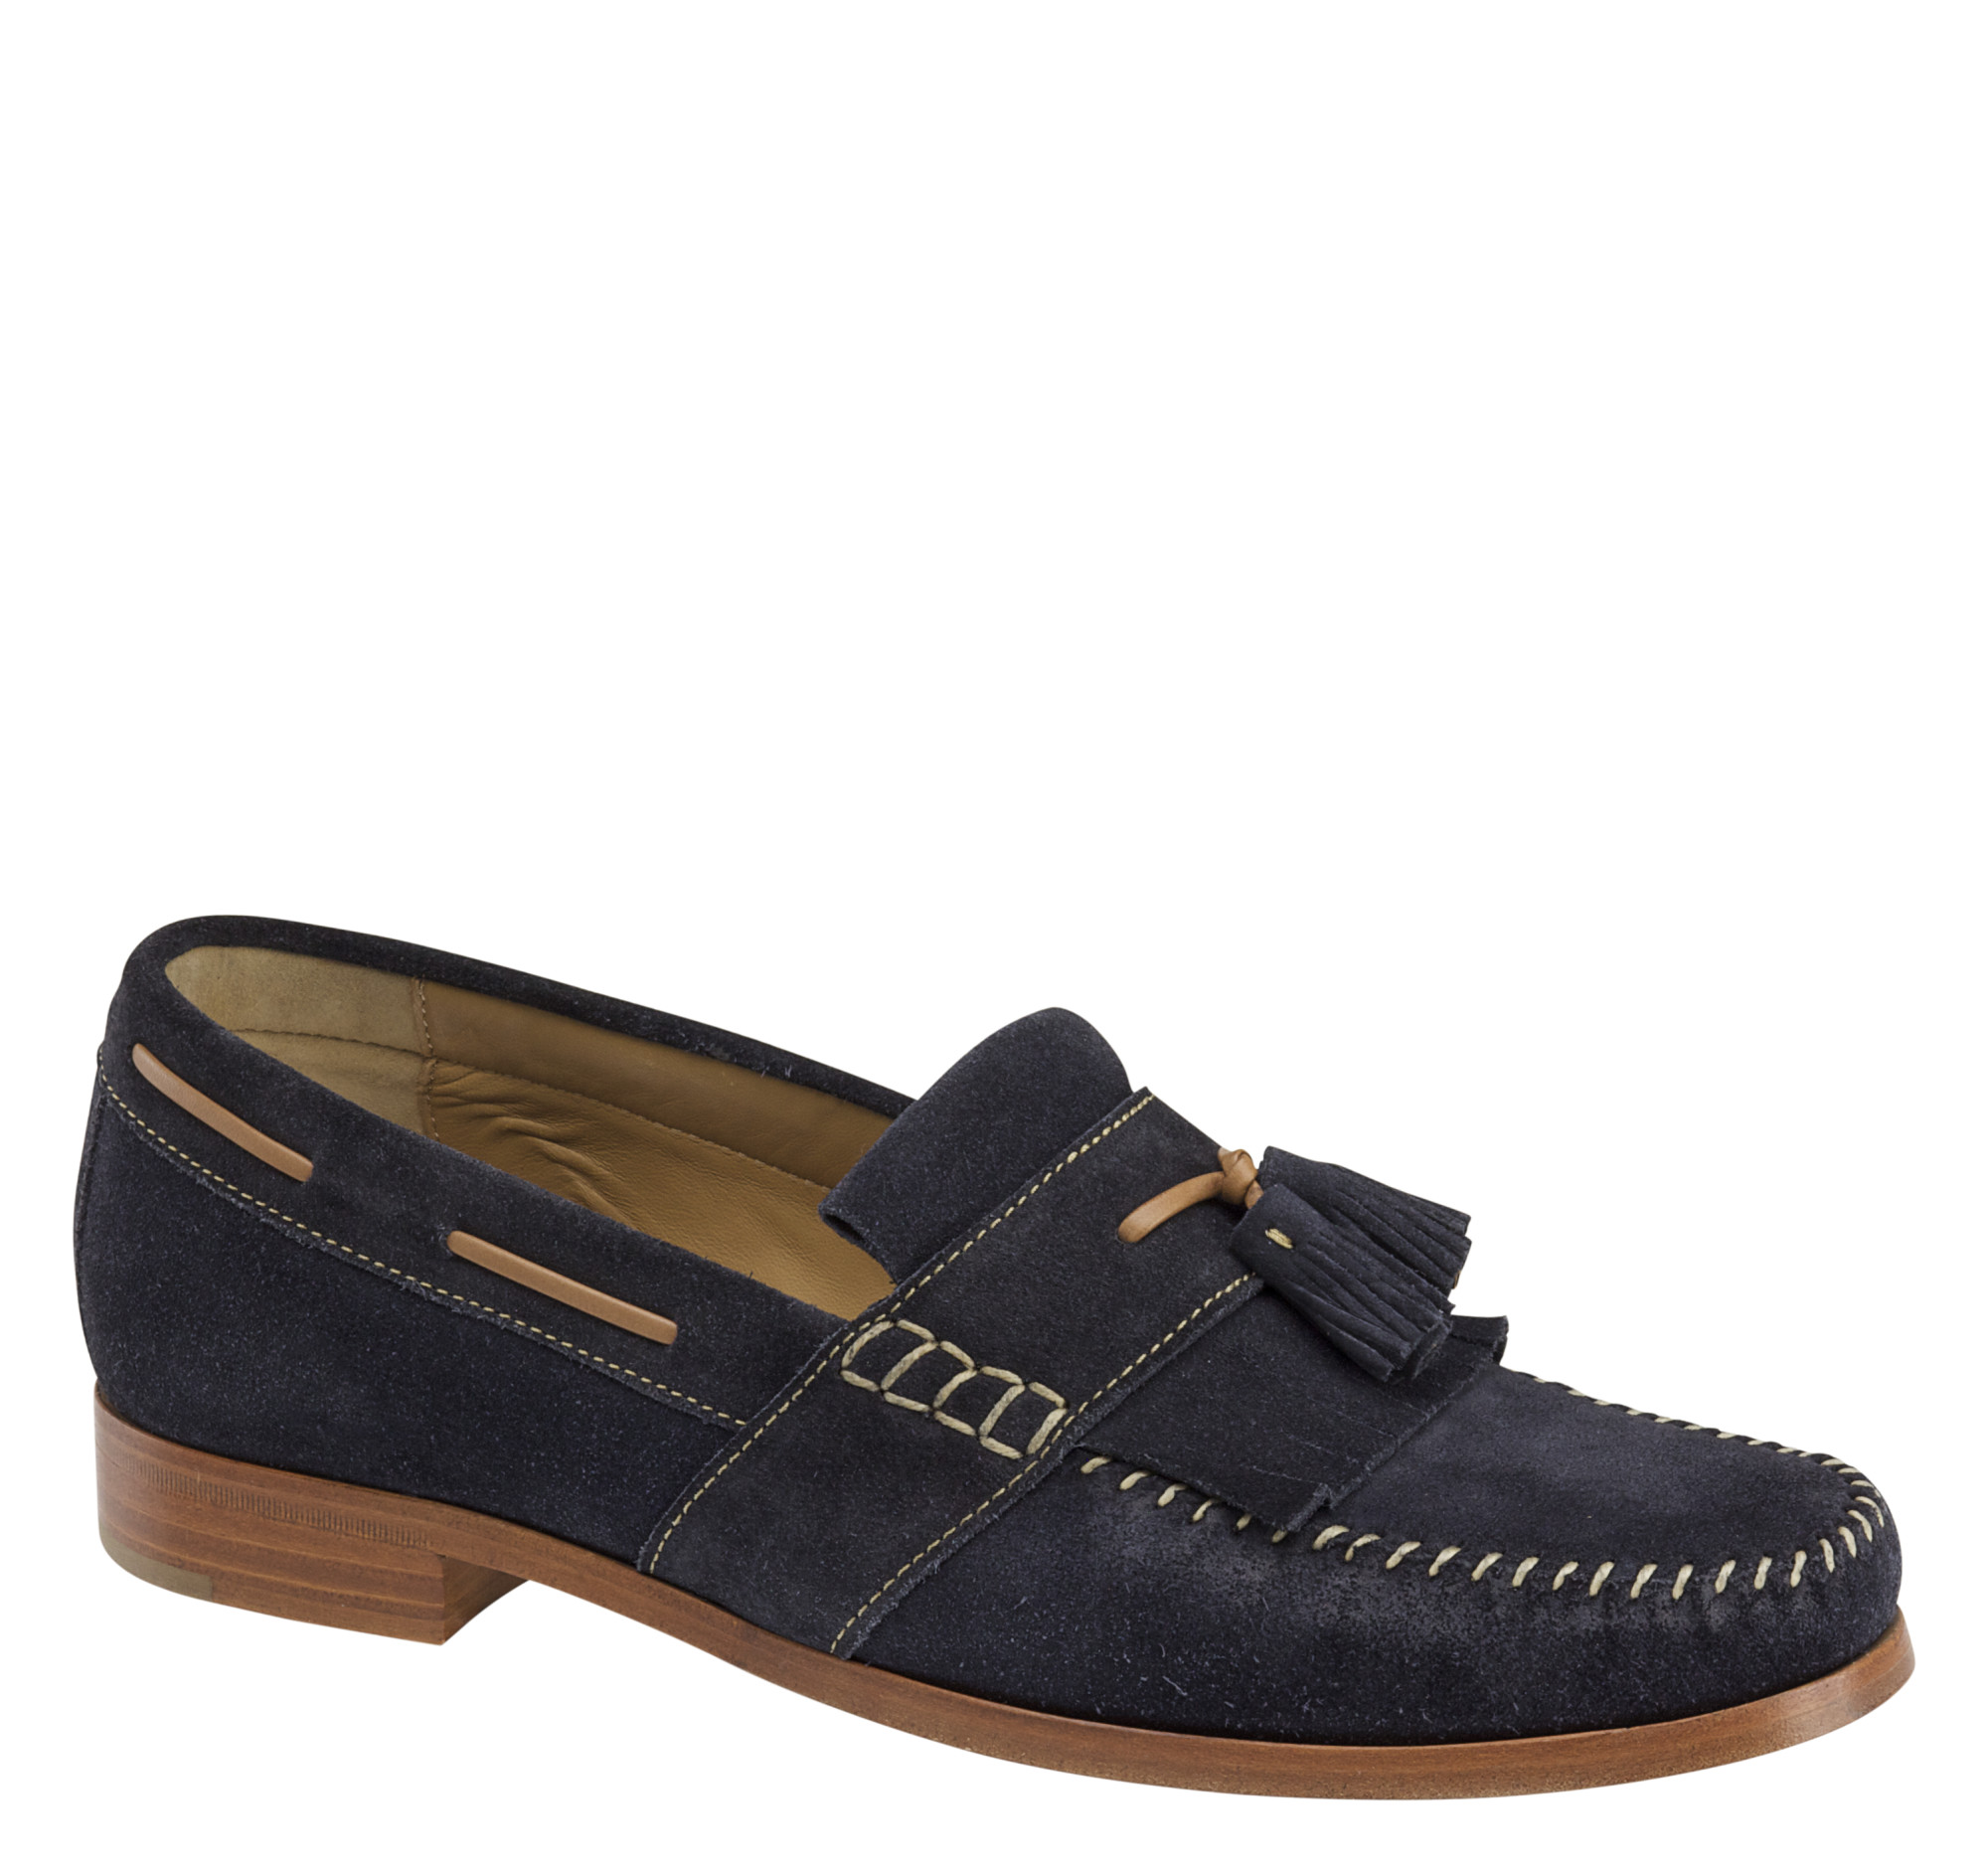 Johnston Murphy Men S Shoes And Sneakers At Menstyle Usa